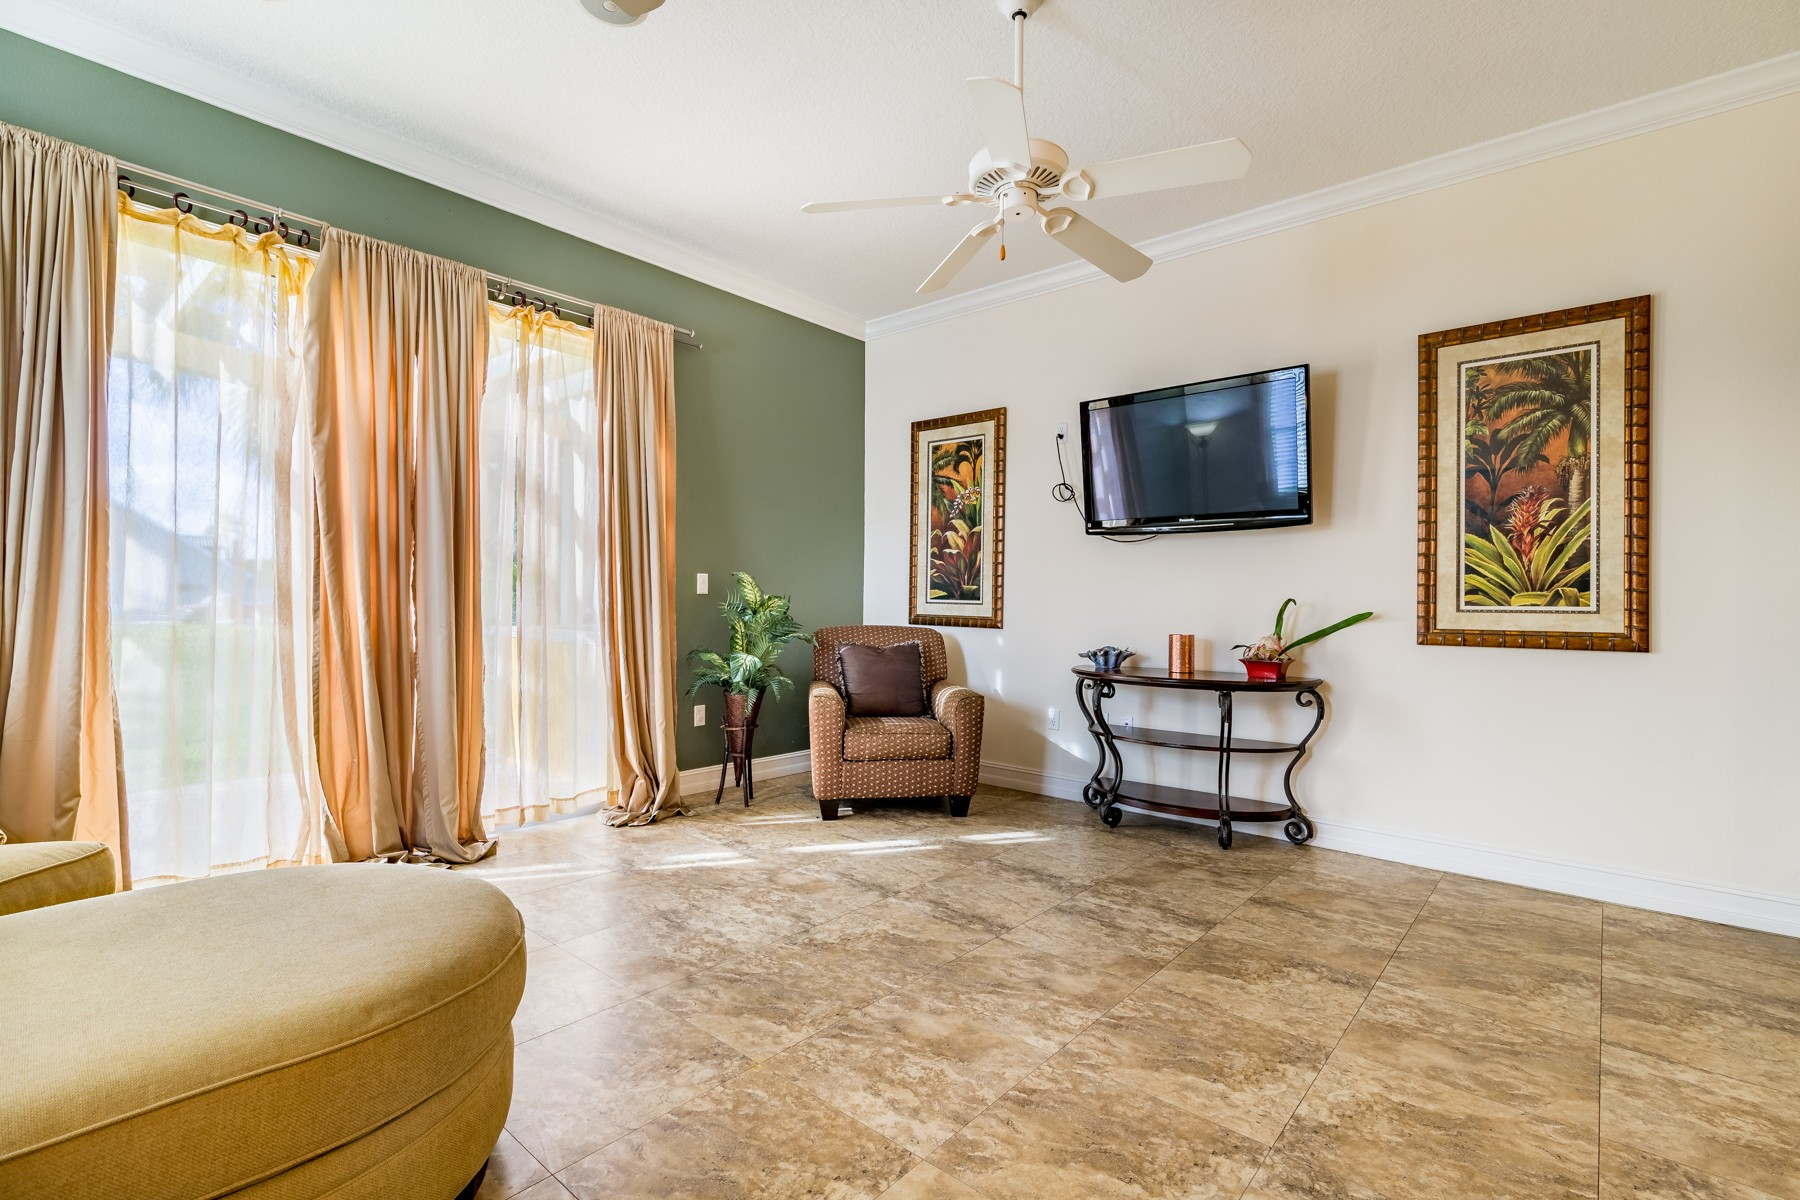 Additional photo for property listing at Beautiful, Luxury Townhouse with a Bright & Open Floor-plan. 607 Washington Avenue Unit 3 Cape Canaveral, Florida 32920 United States